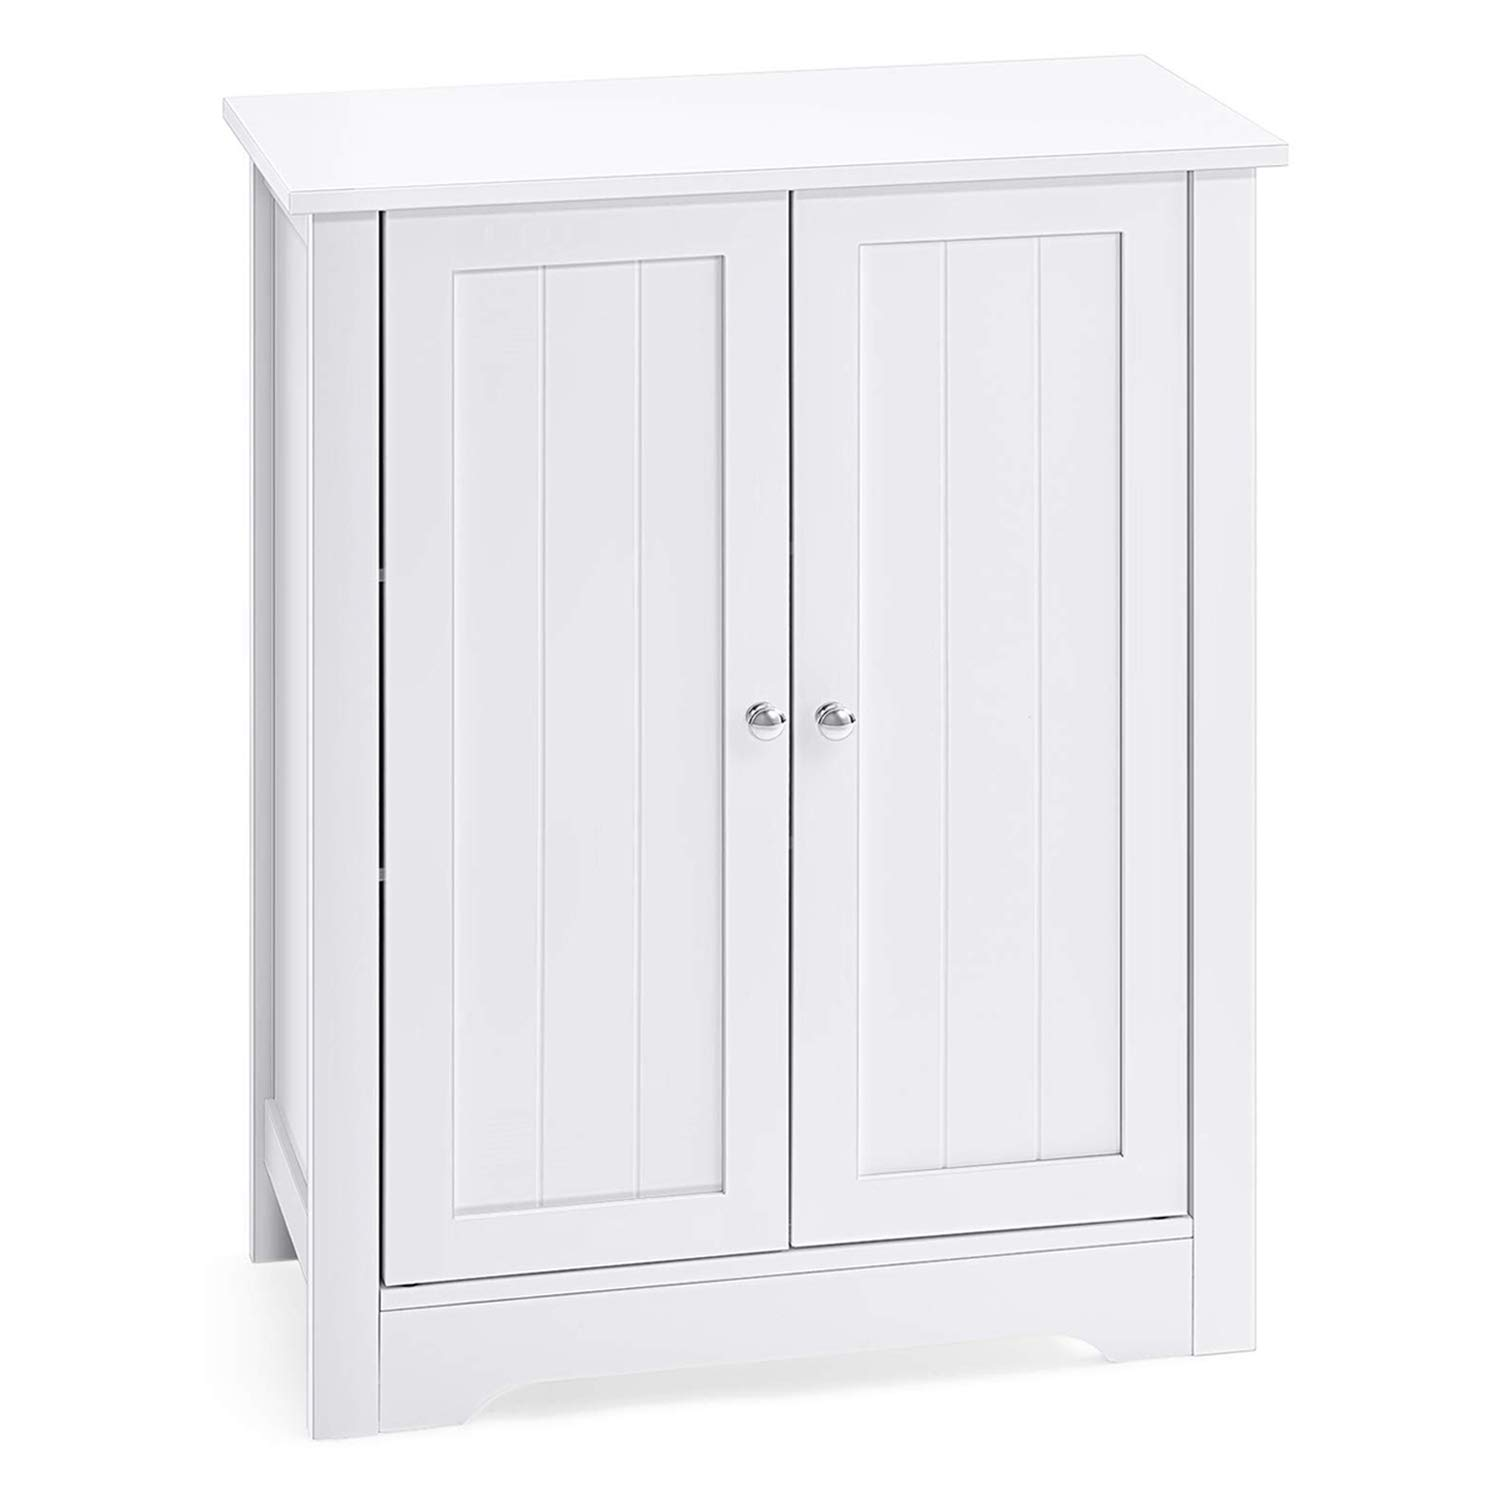 AOOU Bathroom Floor Storage Cabinet Durable Bathroom Cabinet with Double Door Adjustable Shelf, Side Cabinet 23.6 x 11.8 x 31.5 Inches White by AOOU